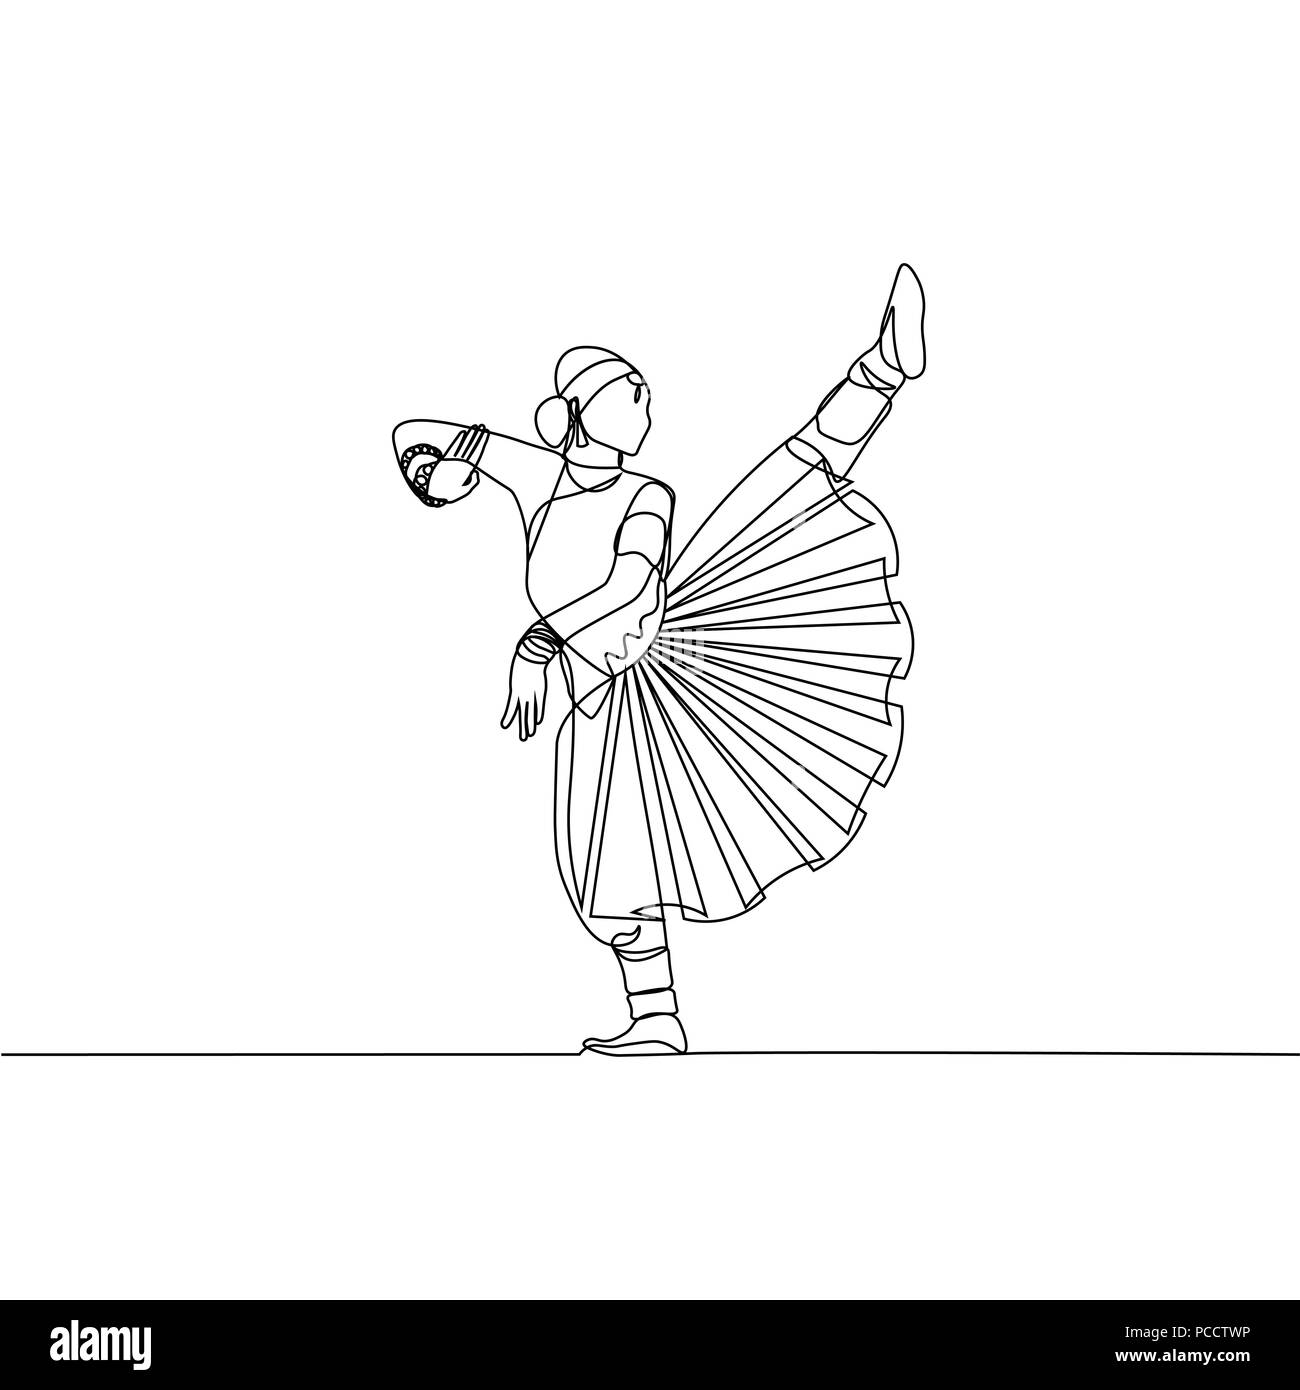 Continuous line drawing womens indian dance alapadma opened lotus